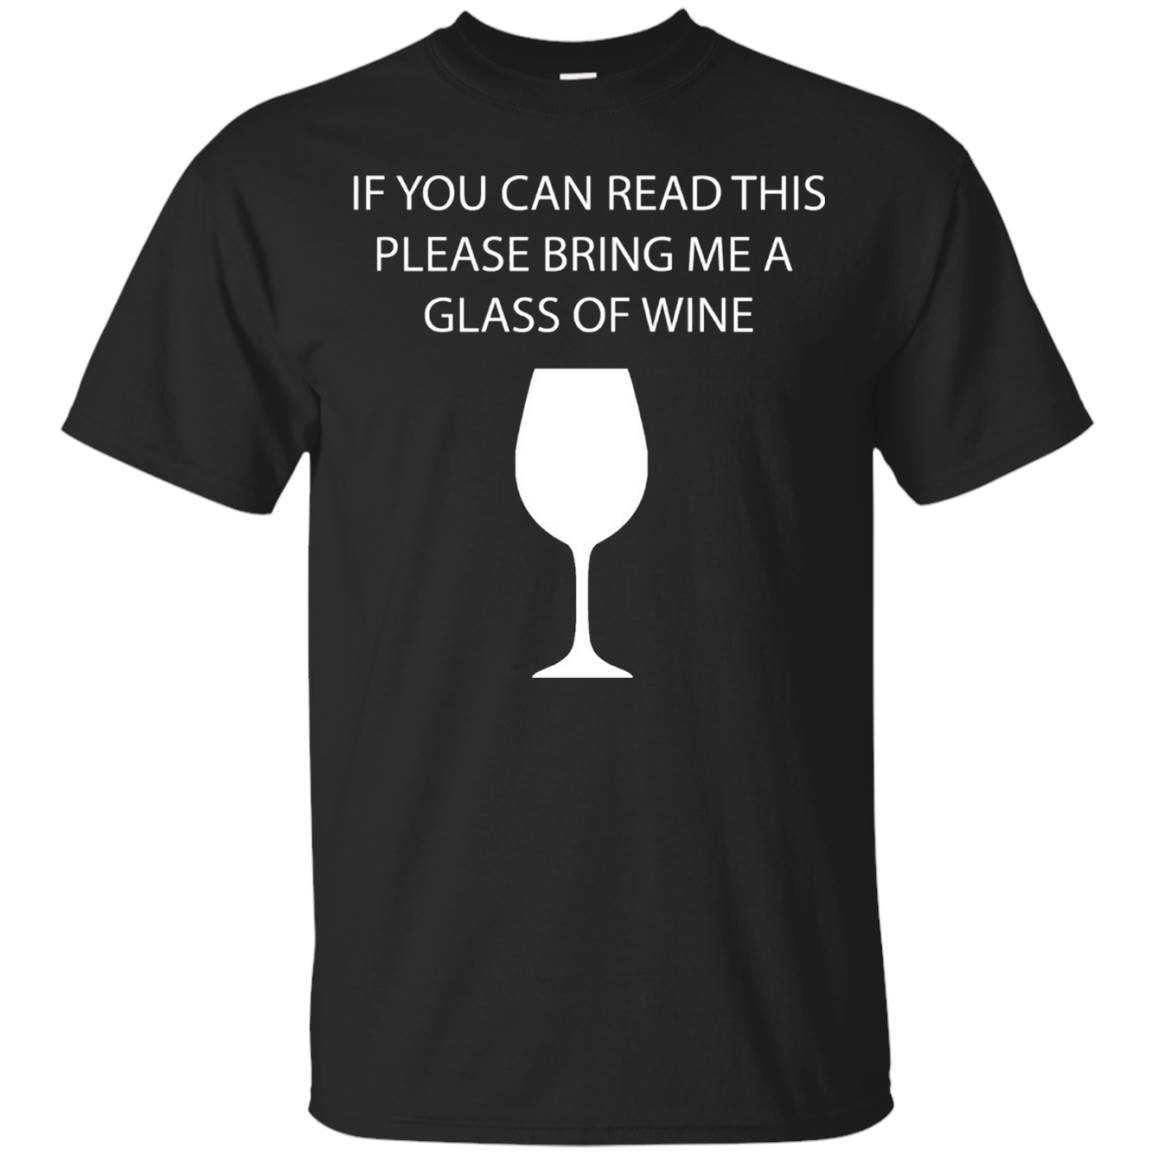 Wine Lovers T-Shirt – If you can read this please bring me..